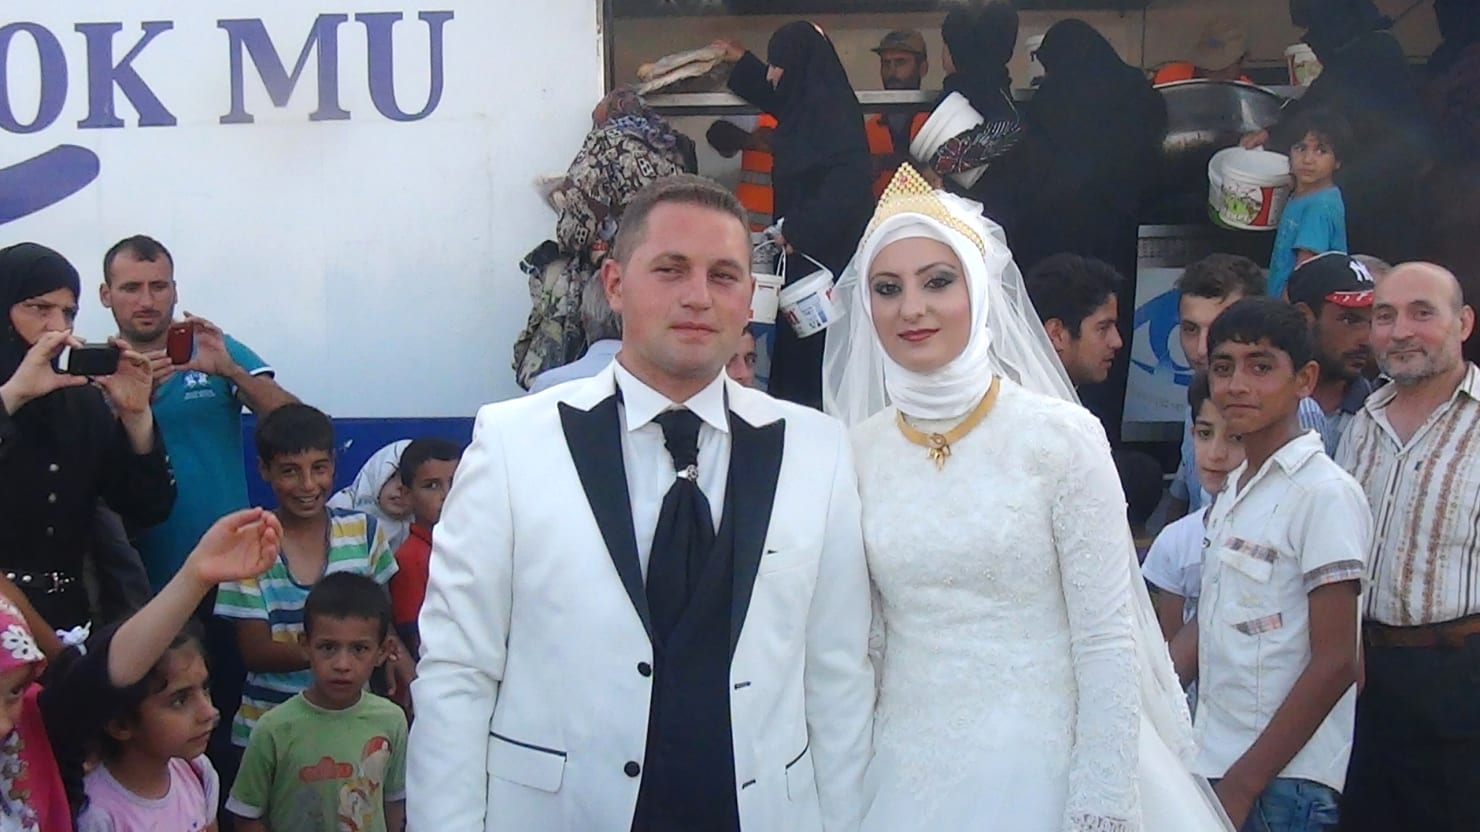 The Most Generous Bride on Earth: Couple Feeds 4,000 Syrian Refugees on Their Wedding Day